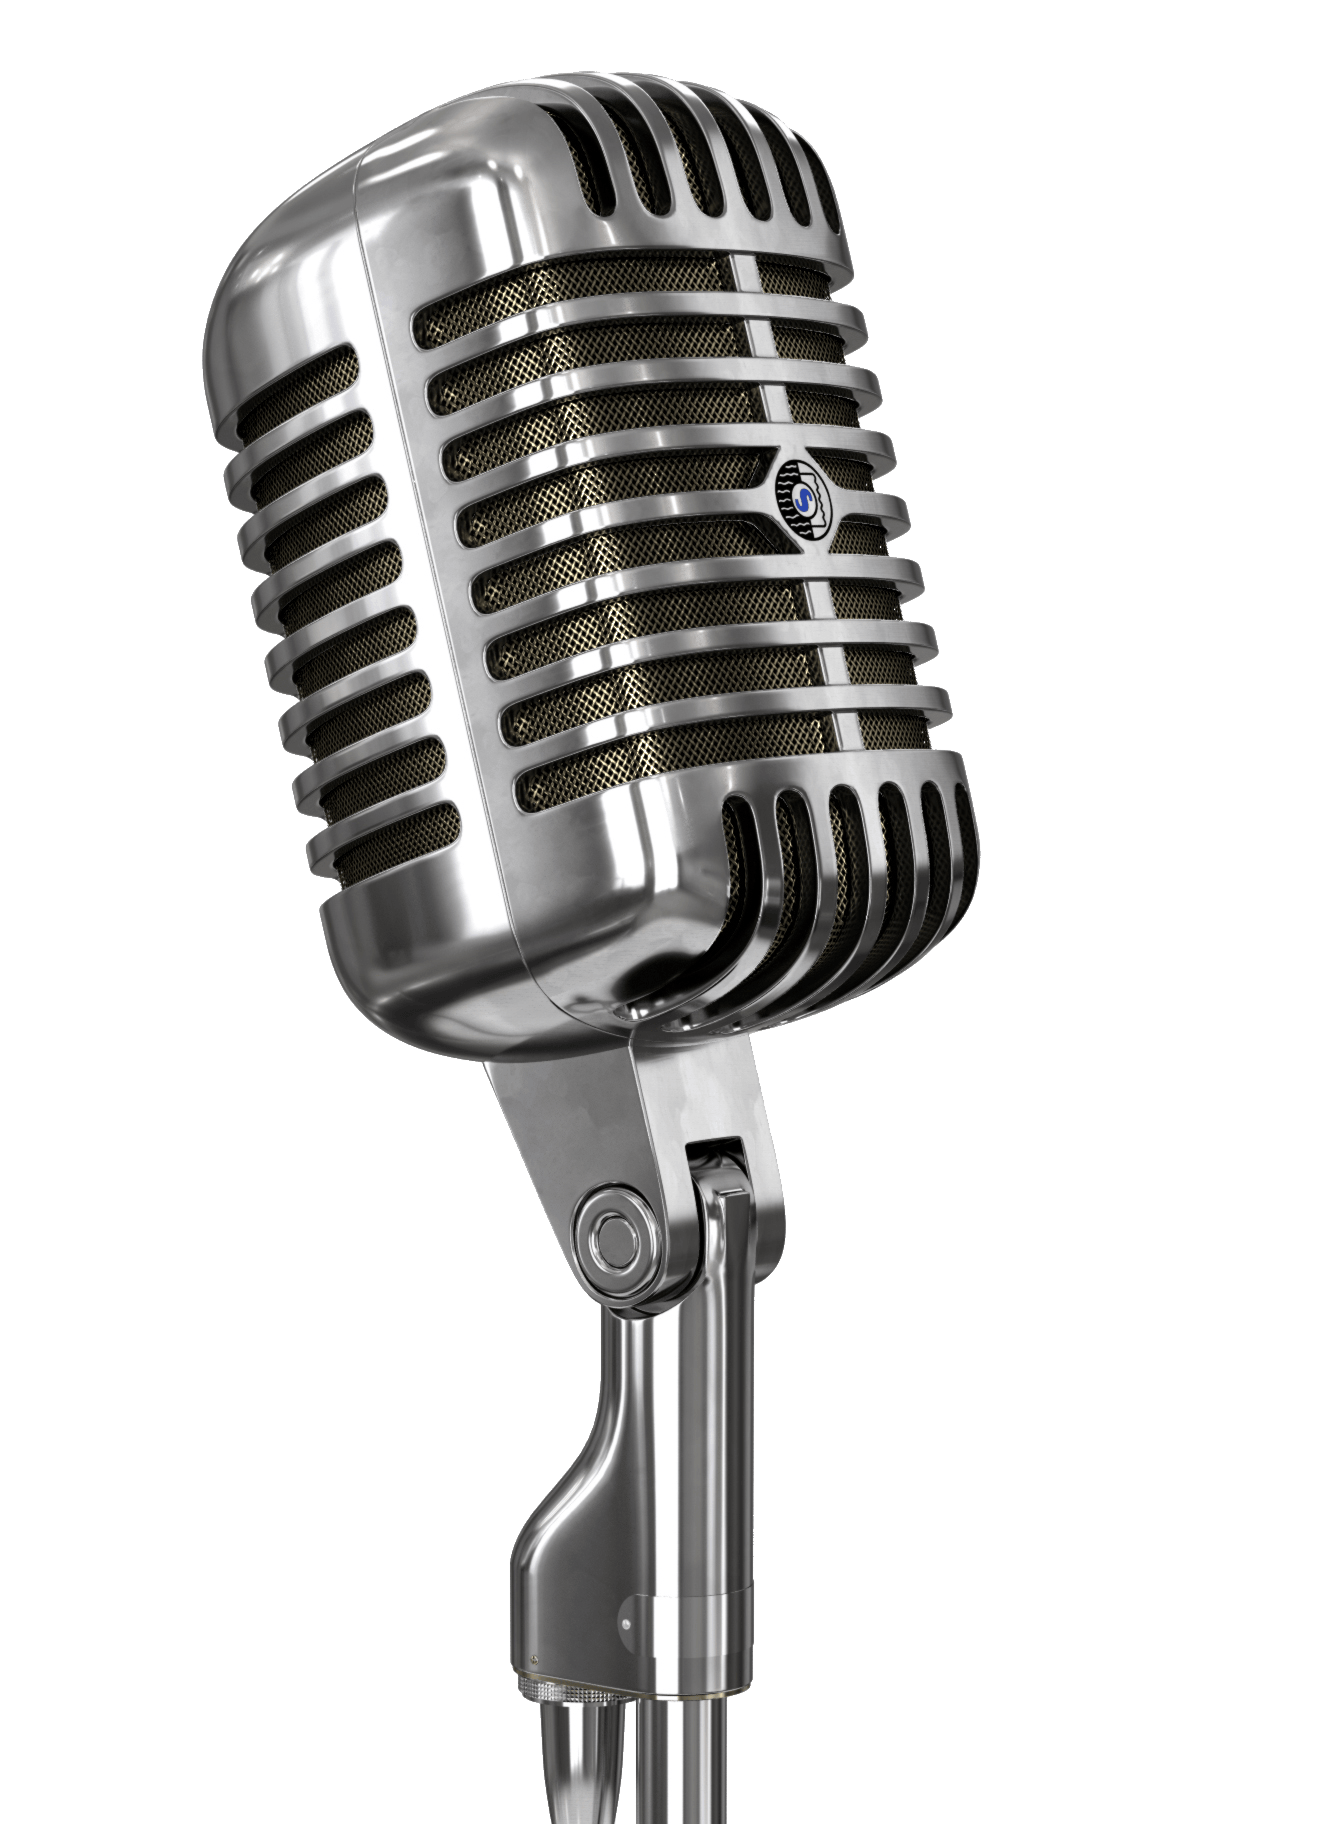 Cartoon microphone png. Free transparent images pluspng